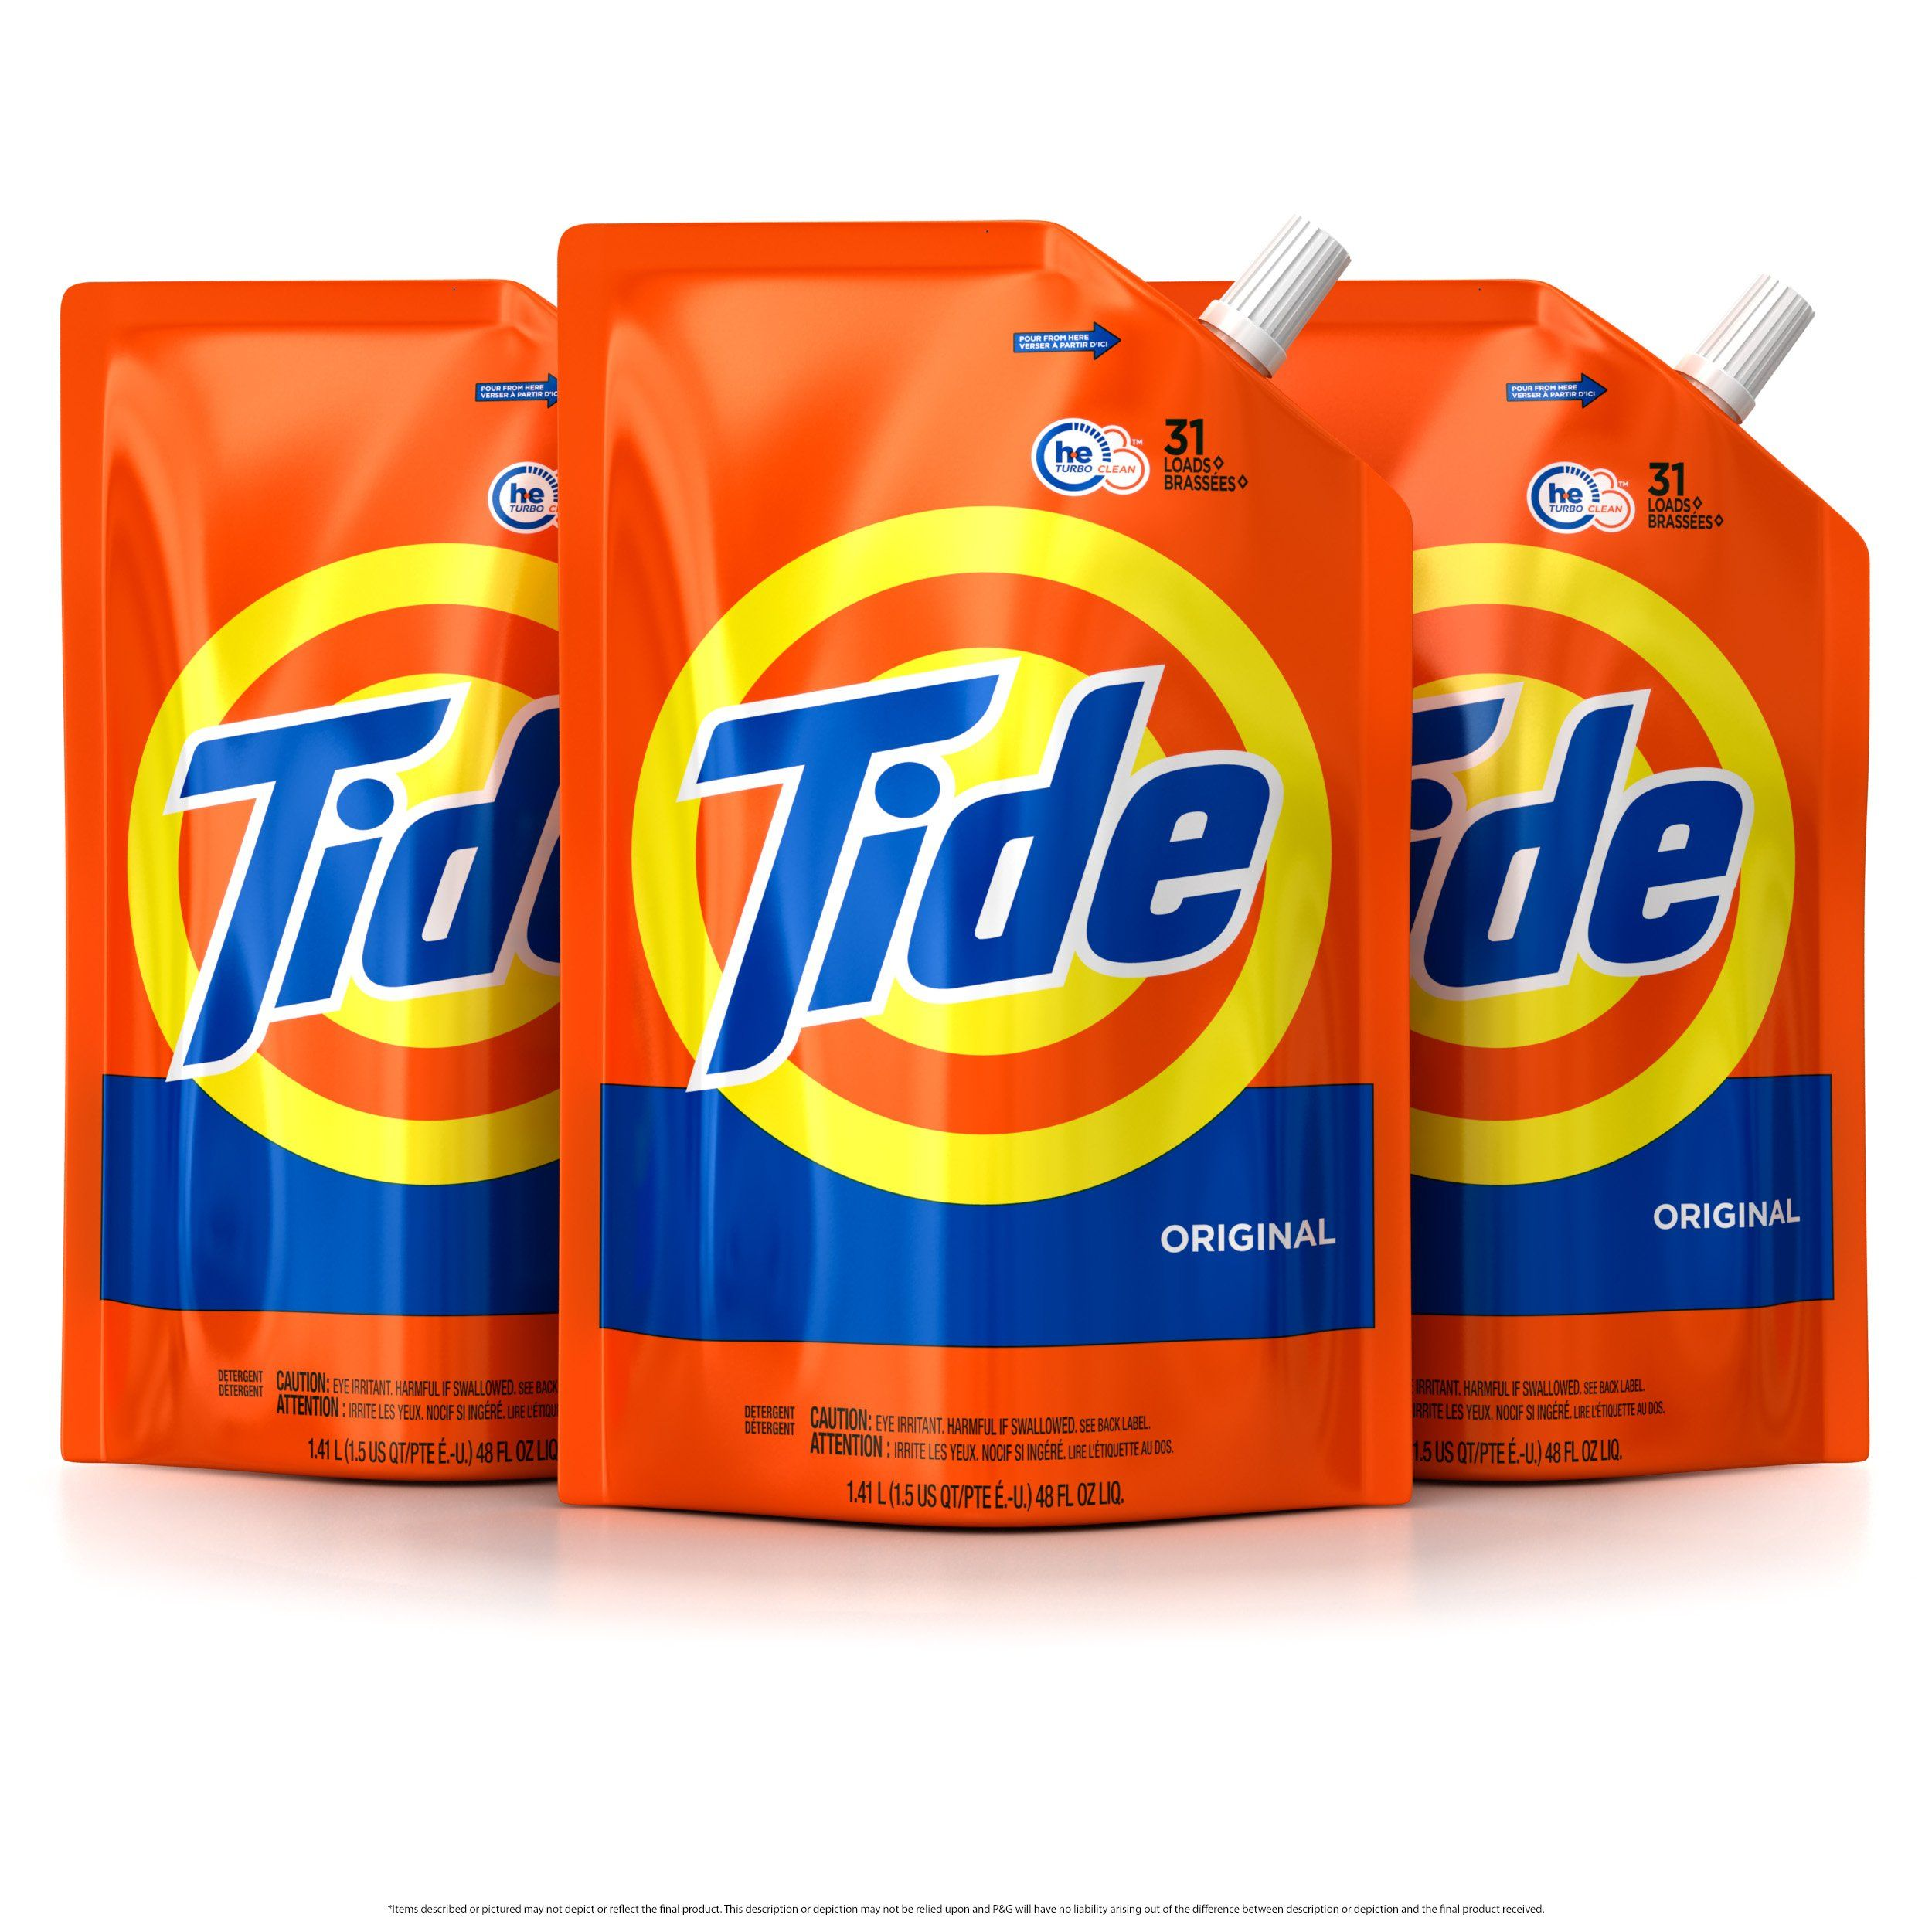 Tide Liquid Laundry Detergent Smart Pouch Original Scent He Turbo